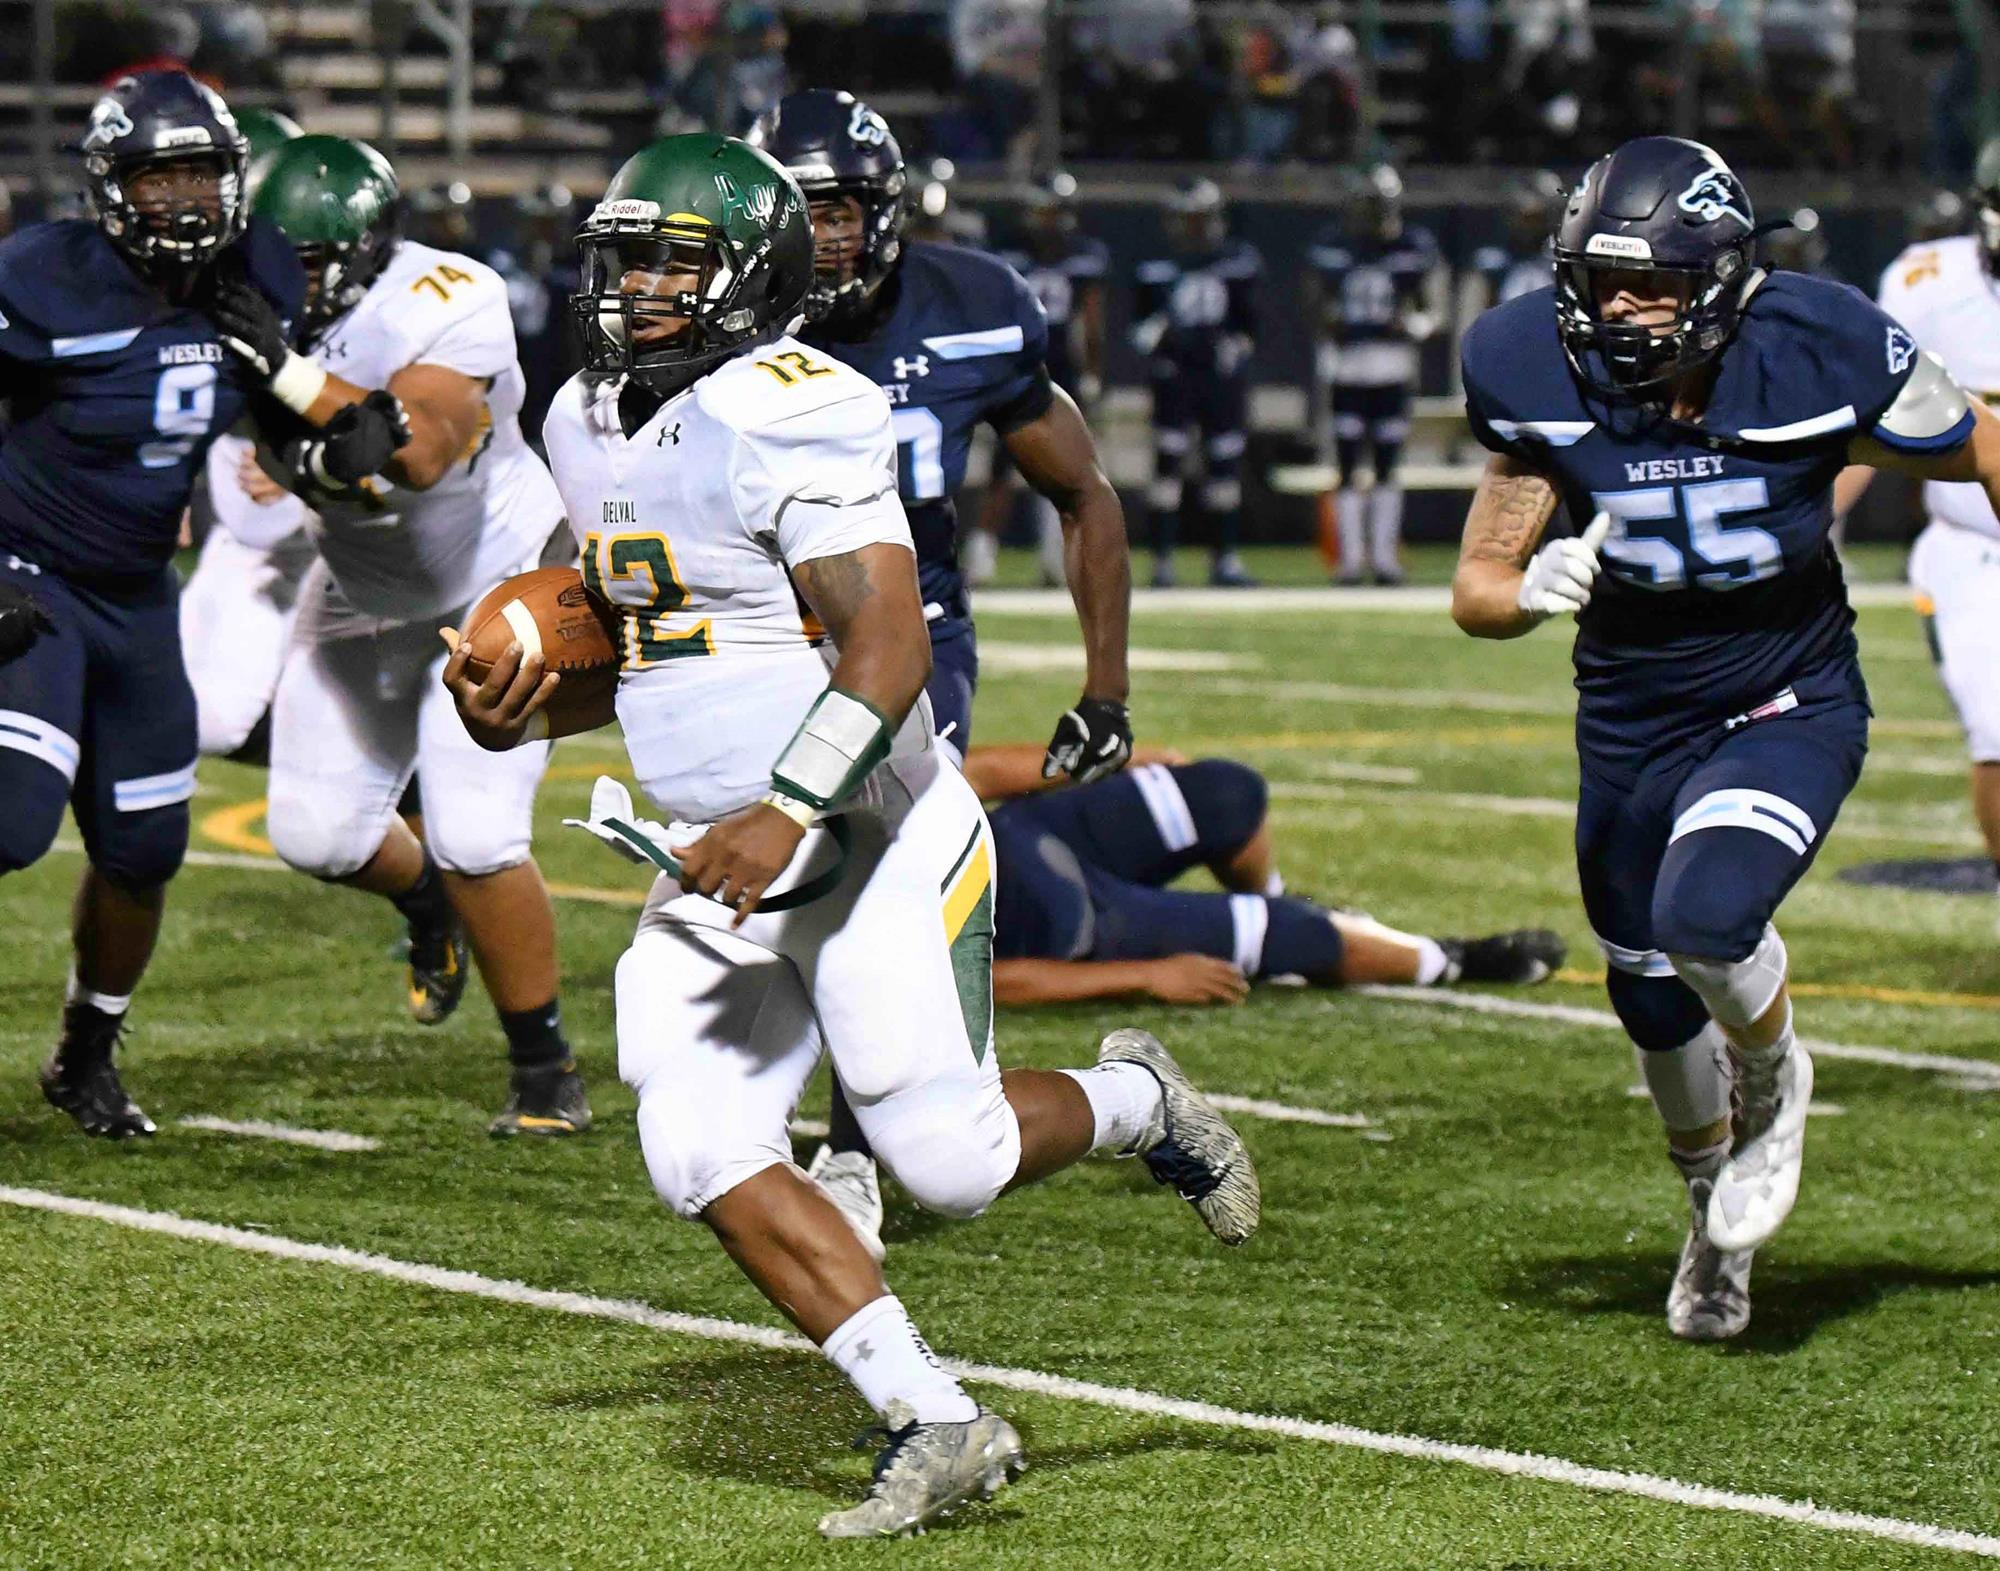 Aggie Football Routs UMass Dartmouth, 52-21 - Delaware Valley ...